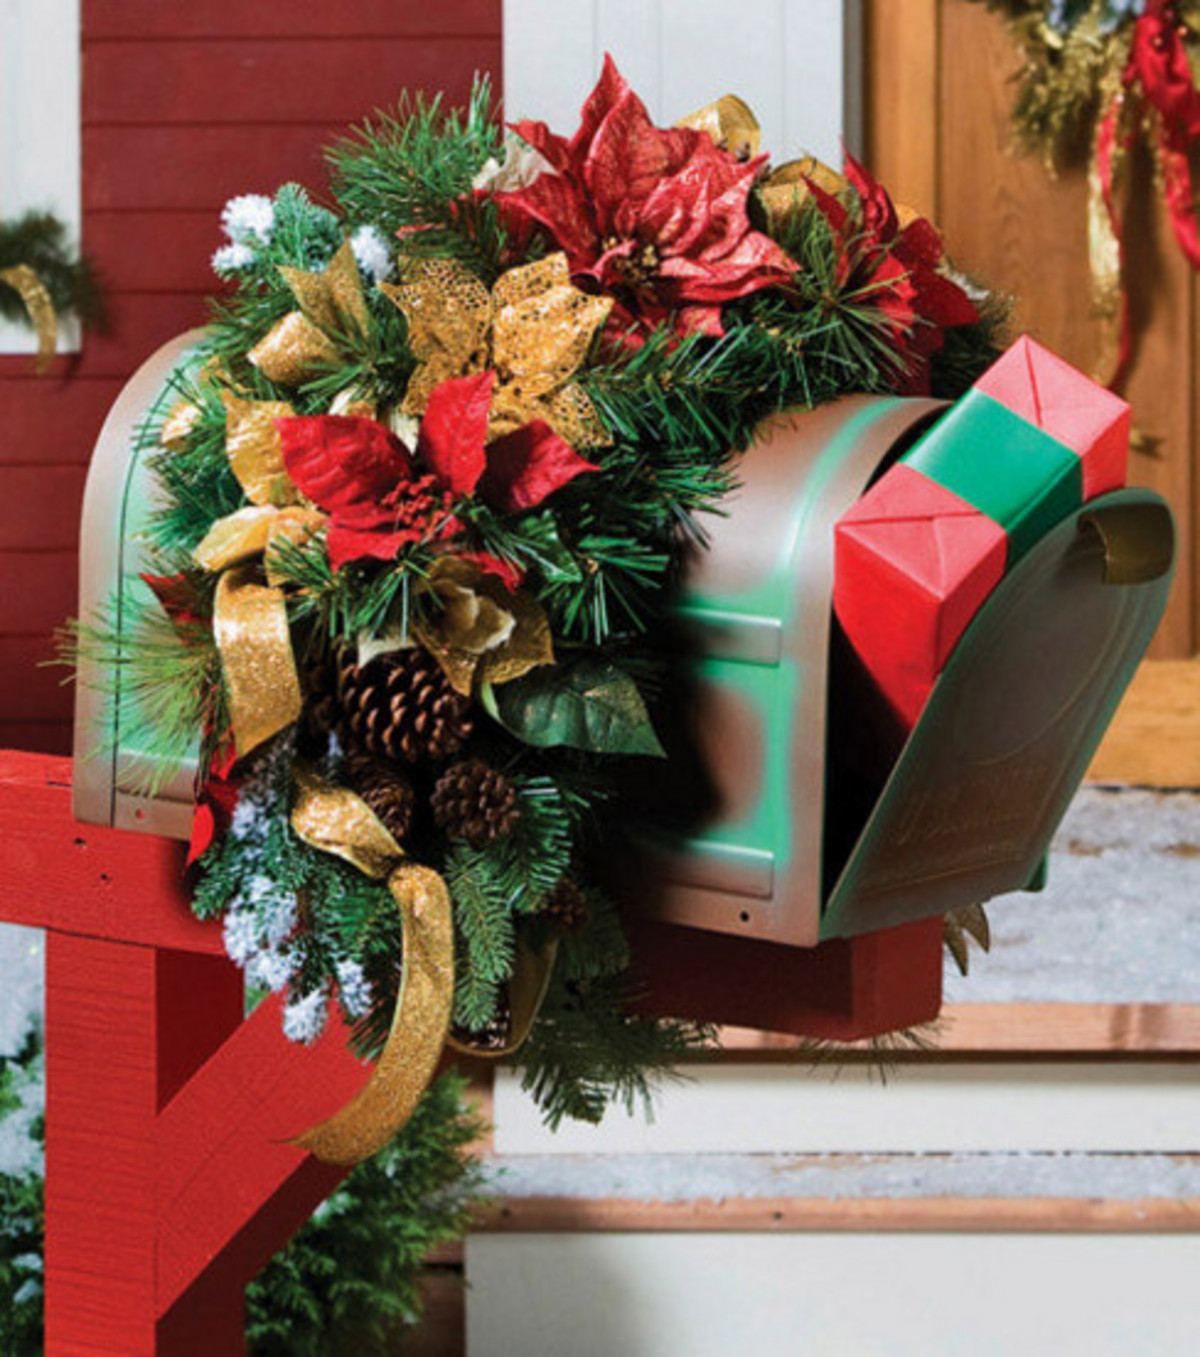 Best Outdoor Christmas Decorations (14)